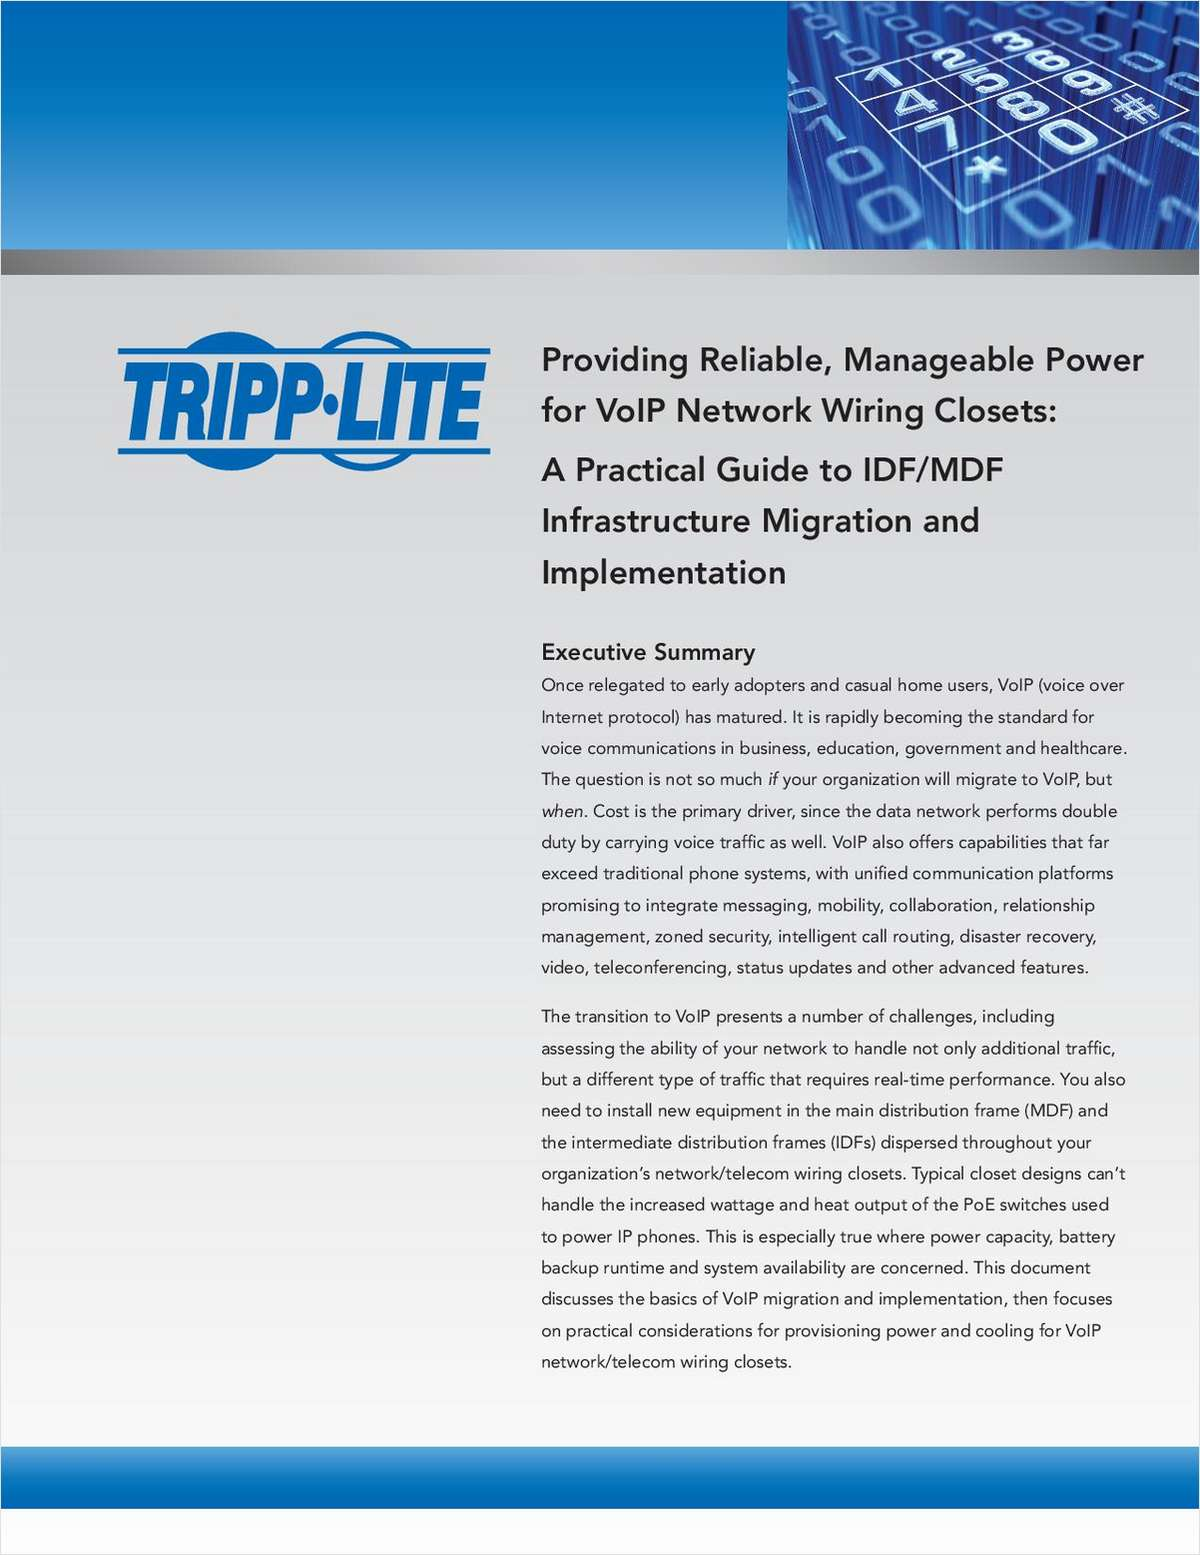 Provide Reliable, Manageable Power for VoIP Network Wiring Closets